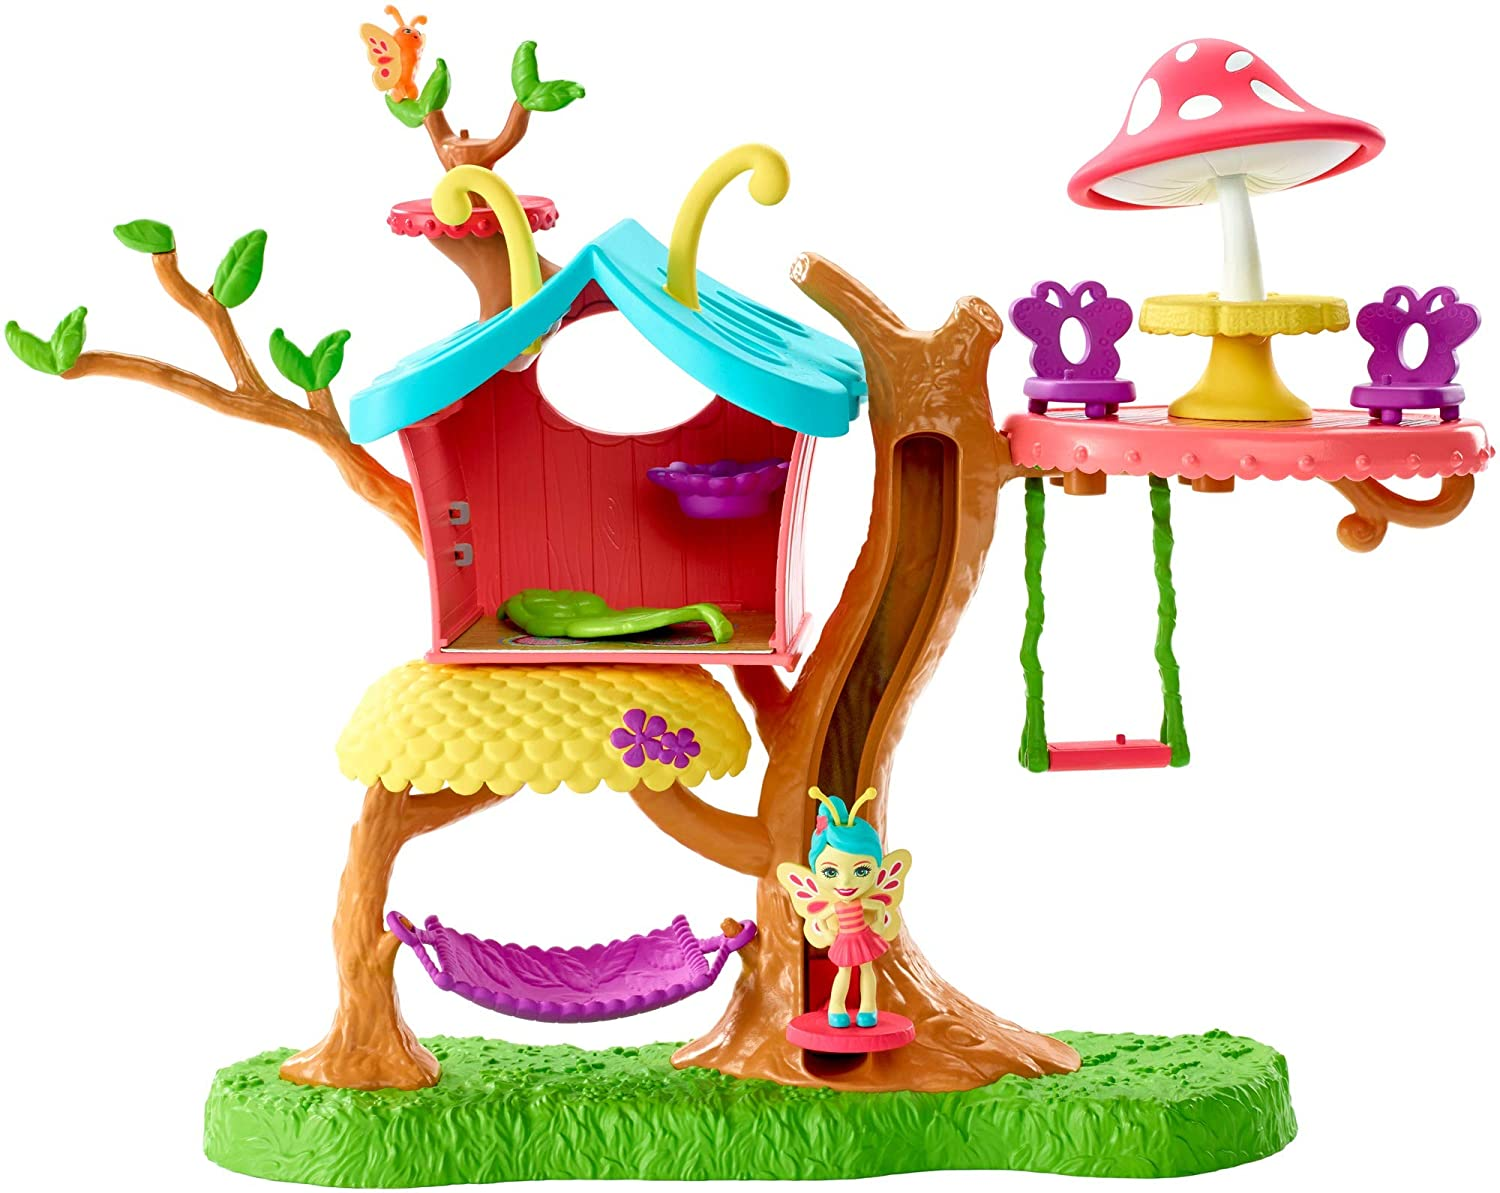 ENCHANTIMALS CASITA DEL ARBOL GBX08